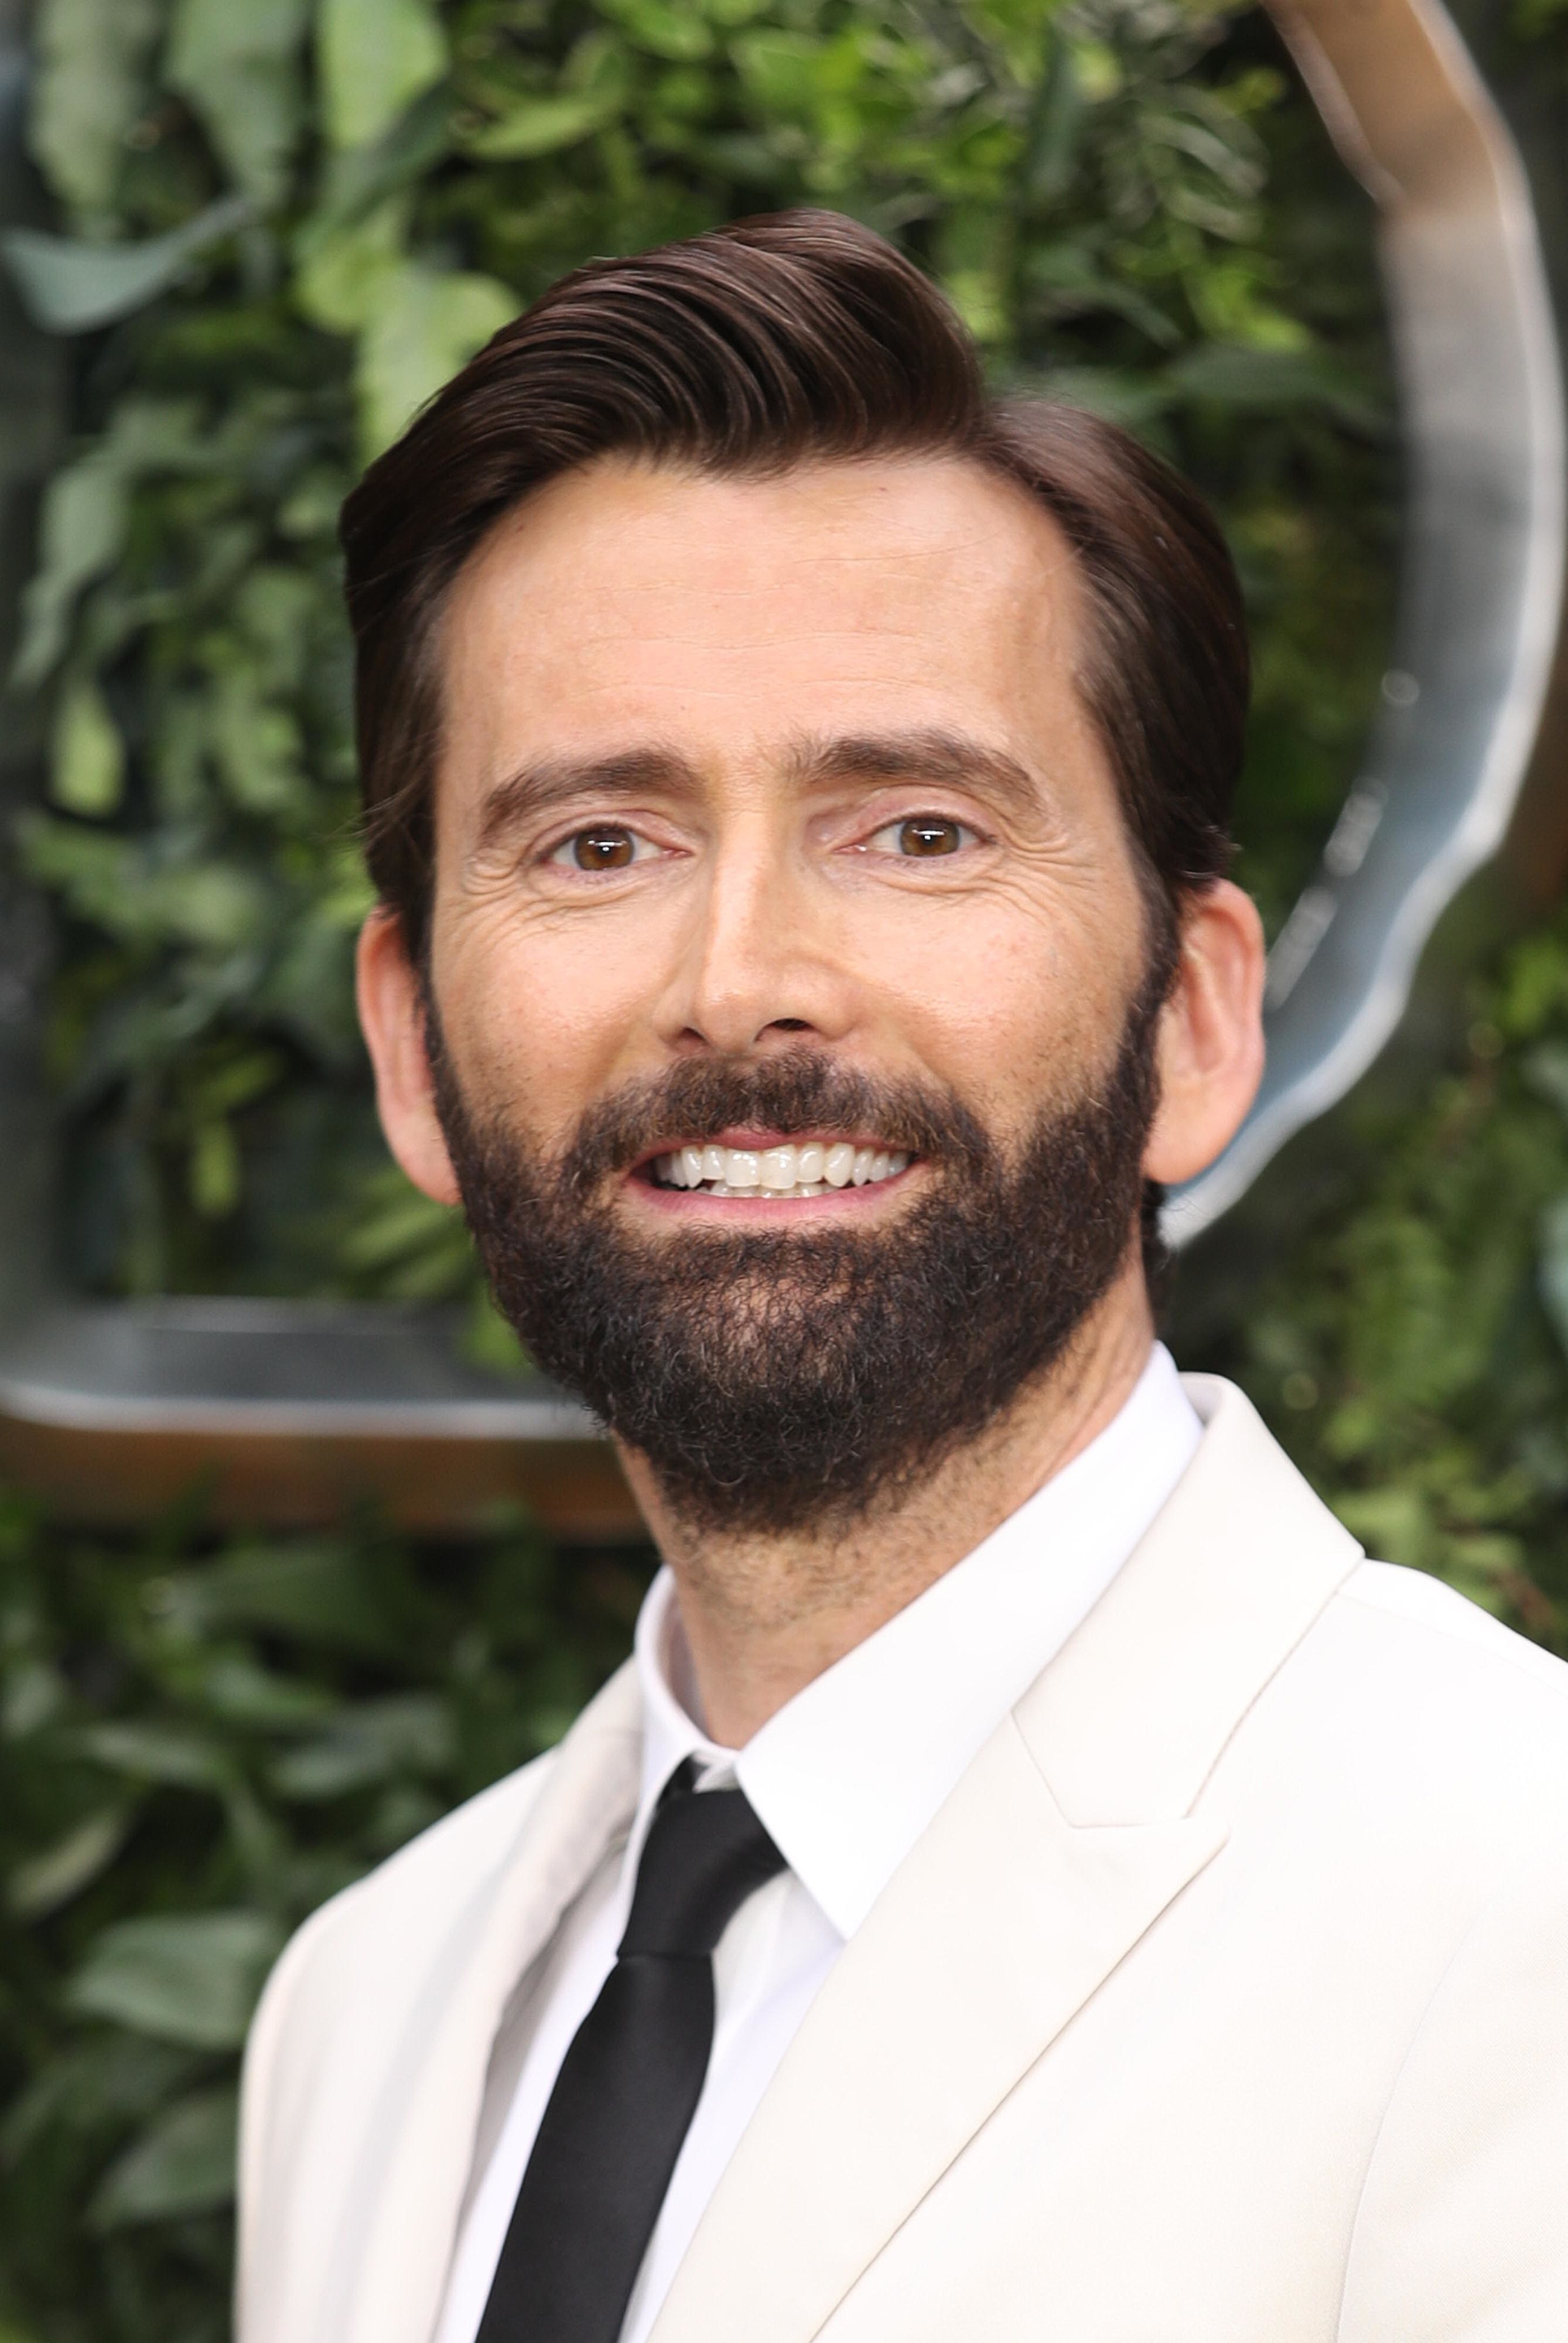 Photo of David Tennant in a white suit